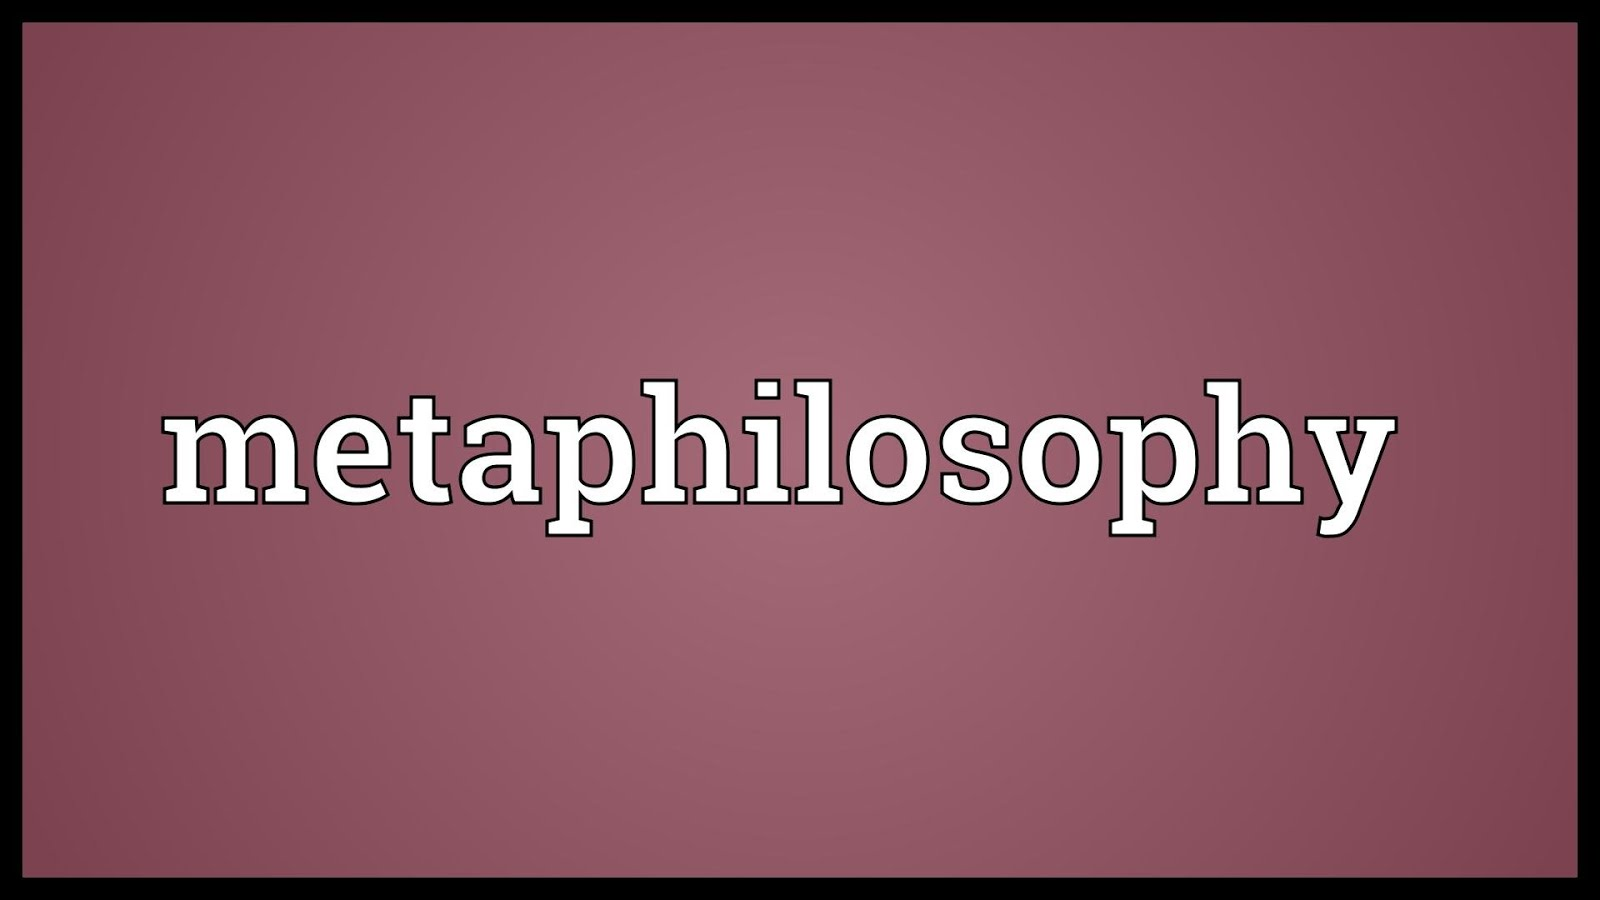 METAPHILOSOPHY, ETC.